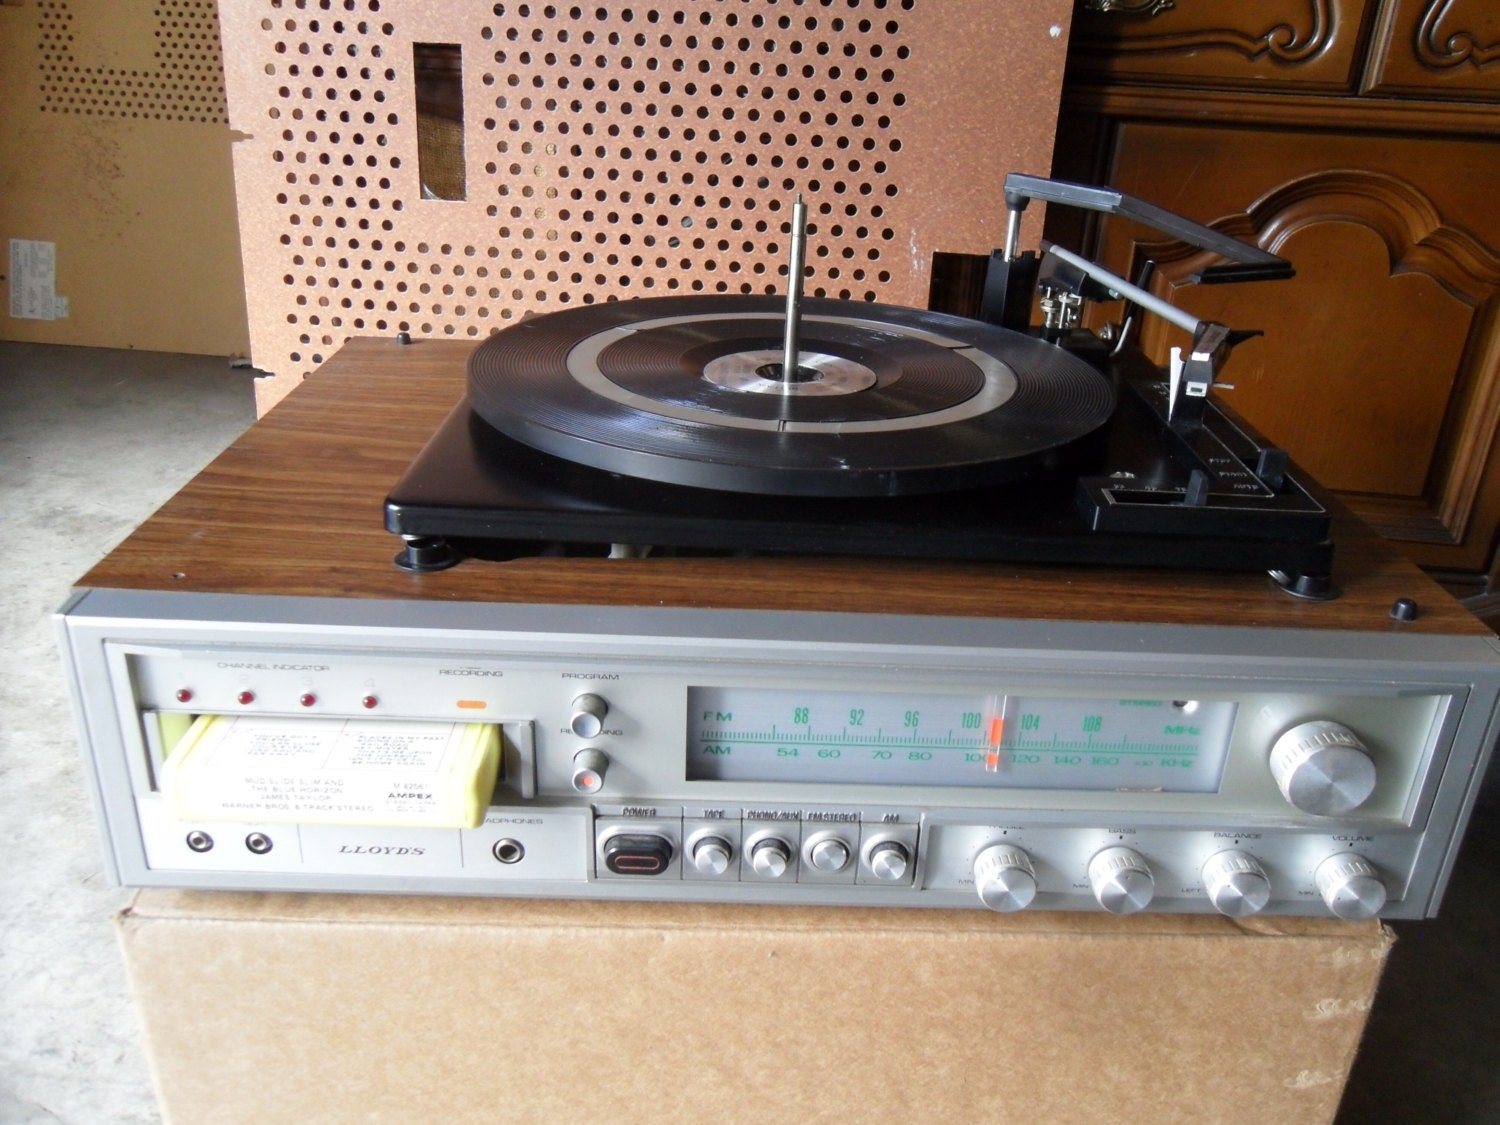 Vintage Lloyds Compact Stereo System With Turntable Am Fm